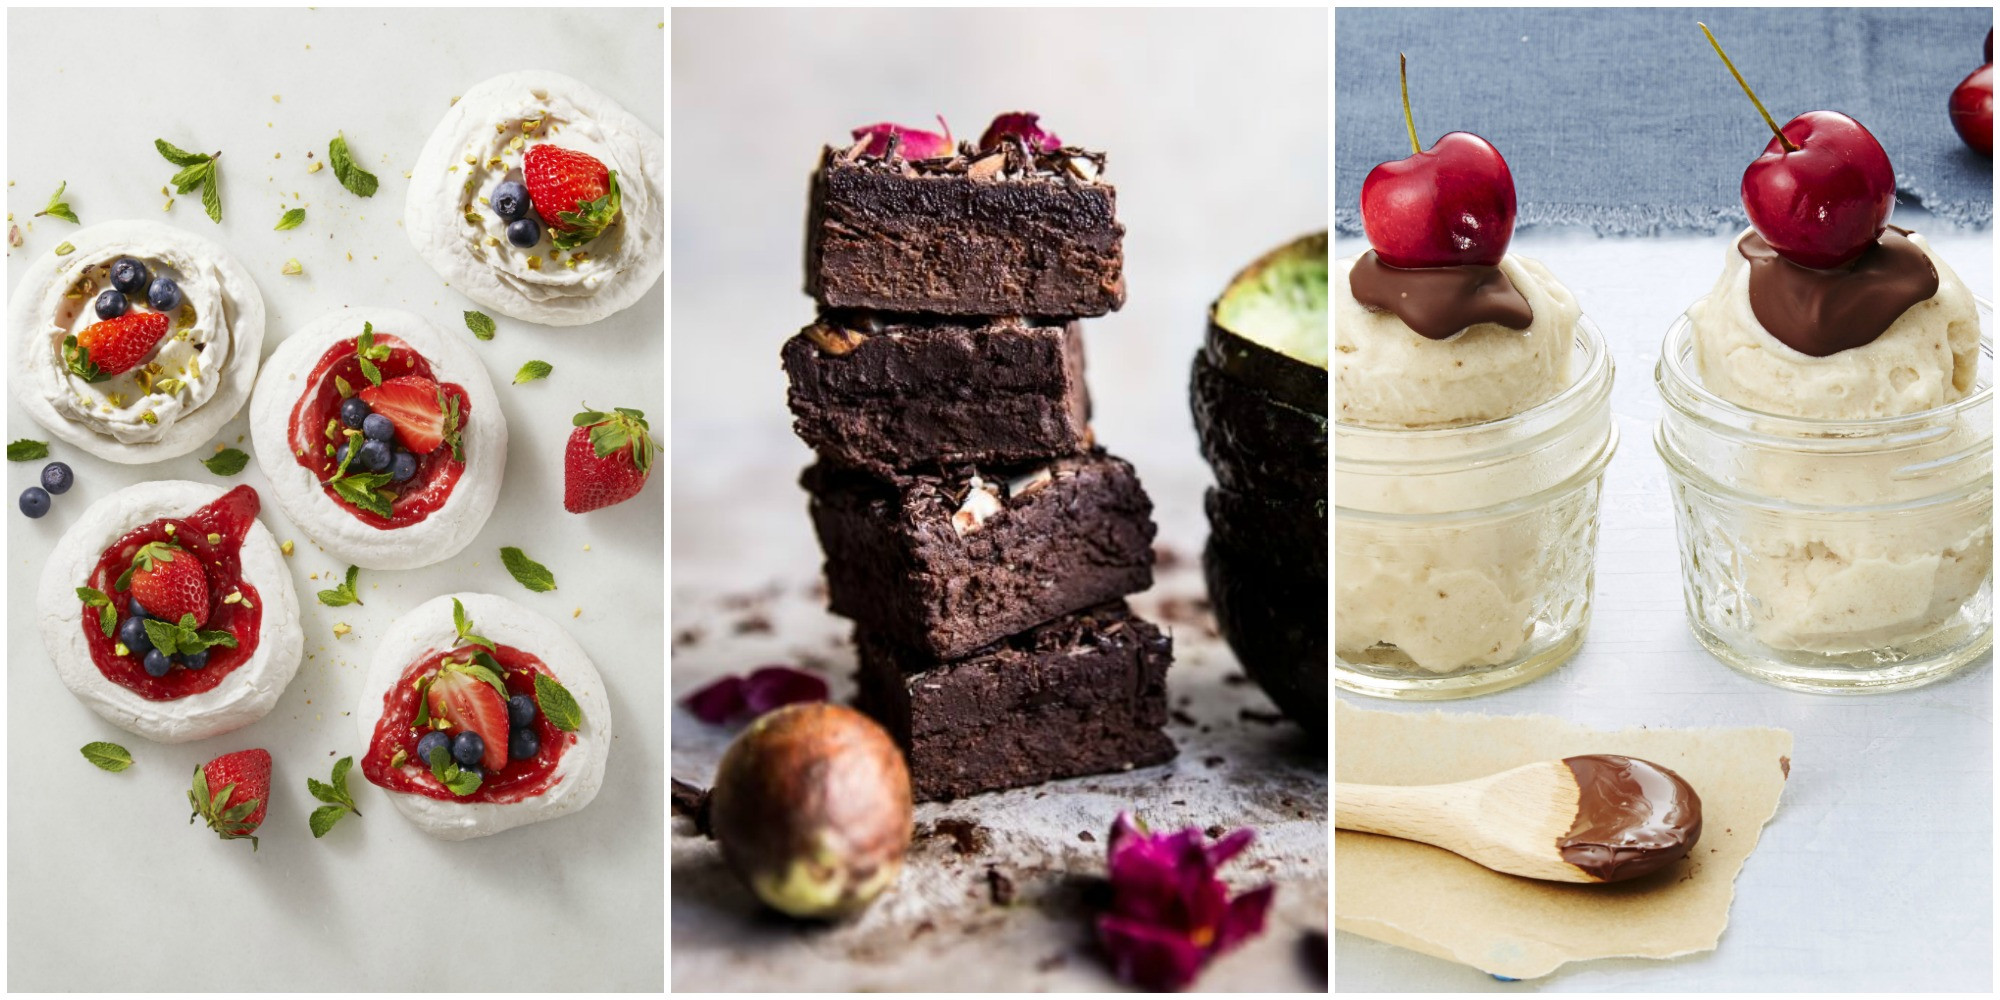 Desserts That Are Healthy  15 Best Healthy Dessert Recipes Easy Ideas for Low